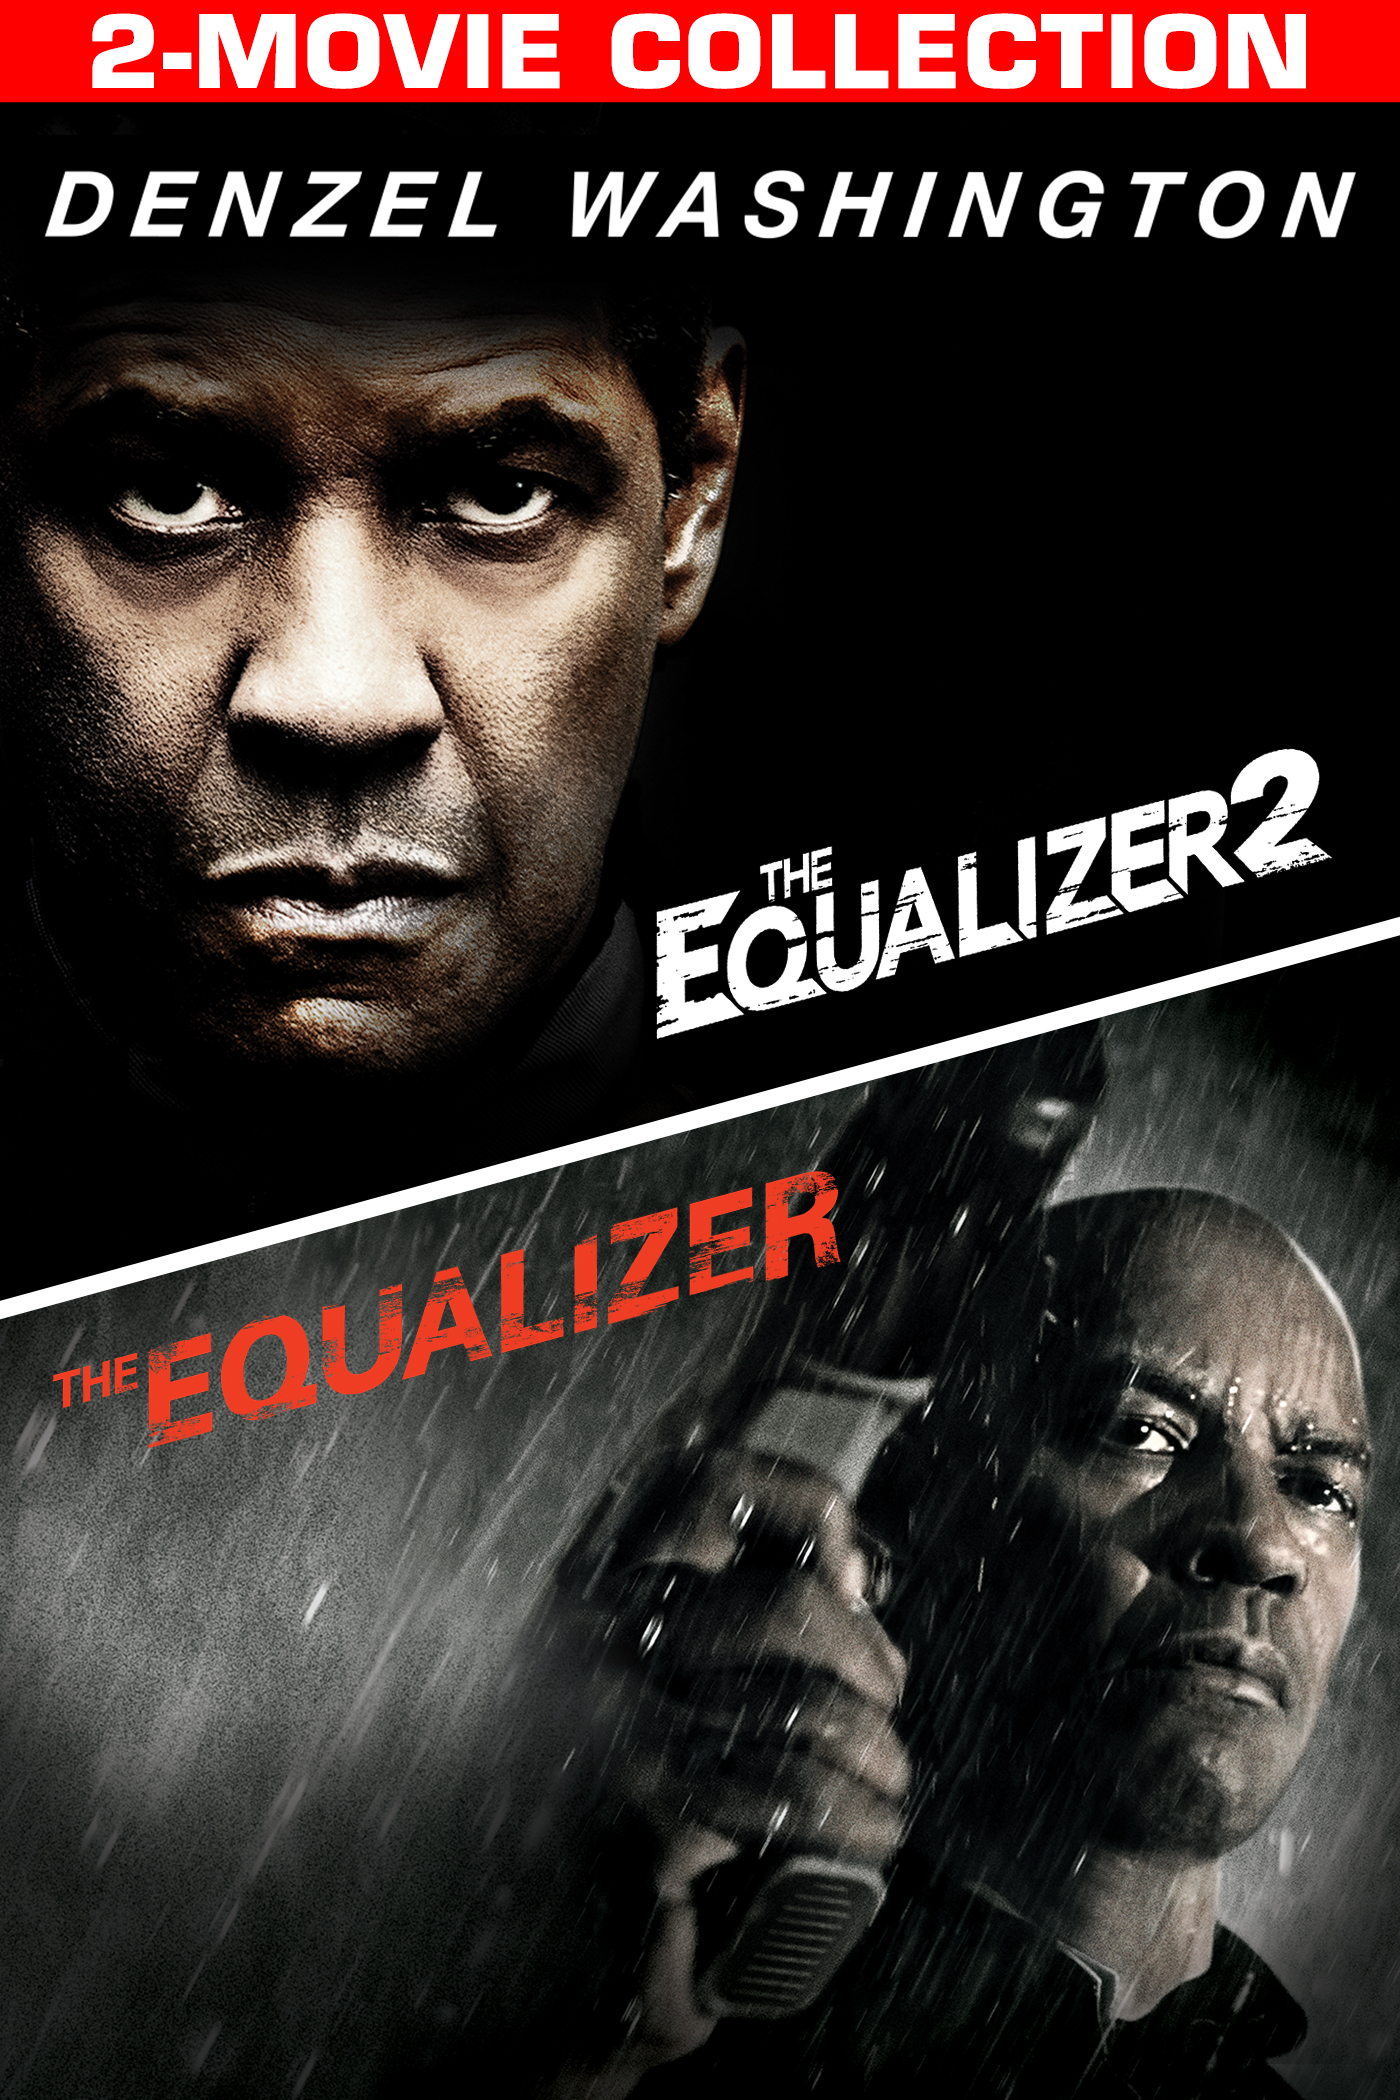 The Equalizer 2 Movie Collection